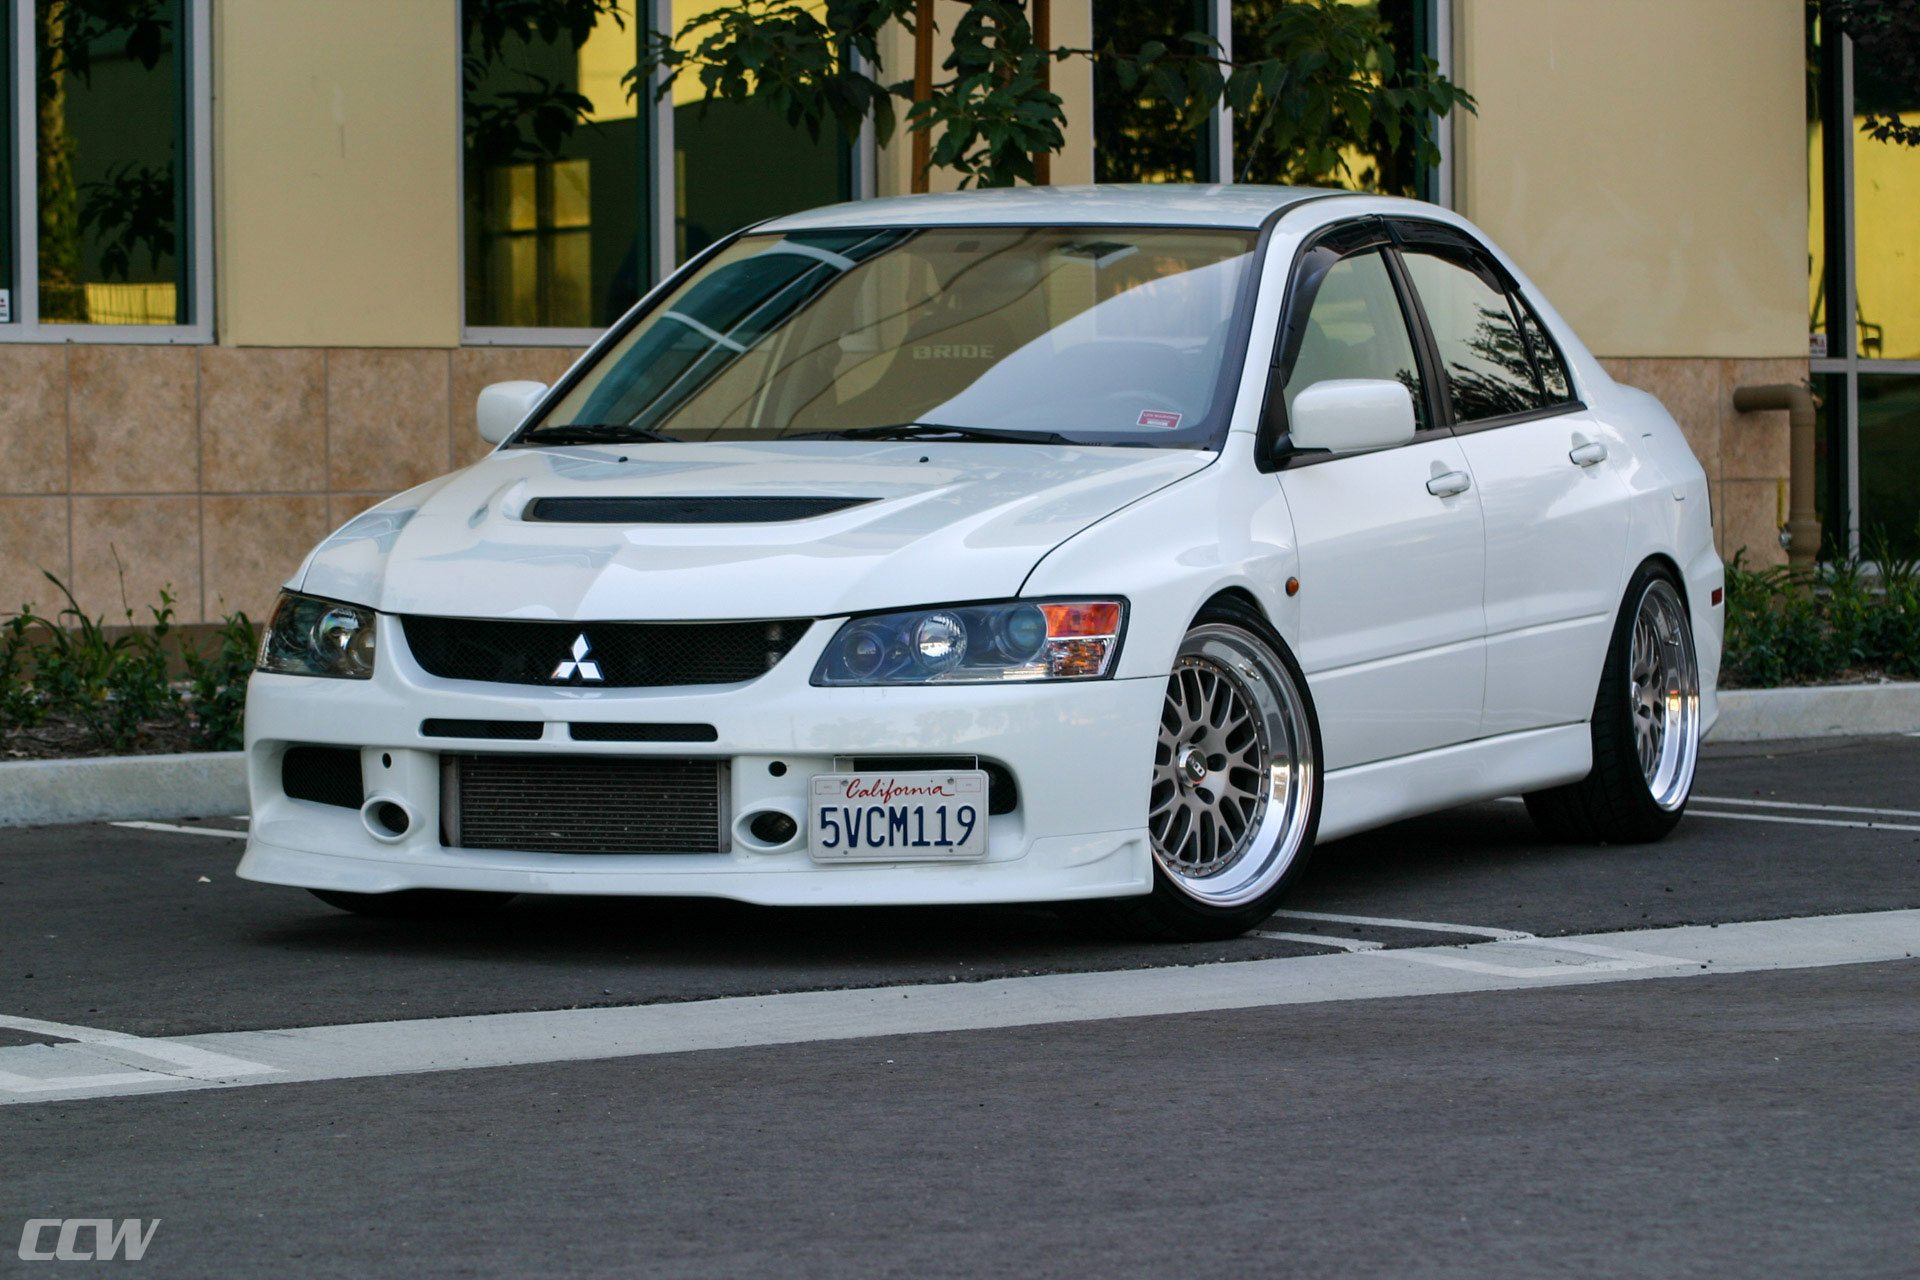 white mitsubishi evo 9 ccw classic wheels ccw wheels. Black Bedroom Furniture Sets. Home Design Ideas